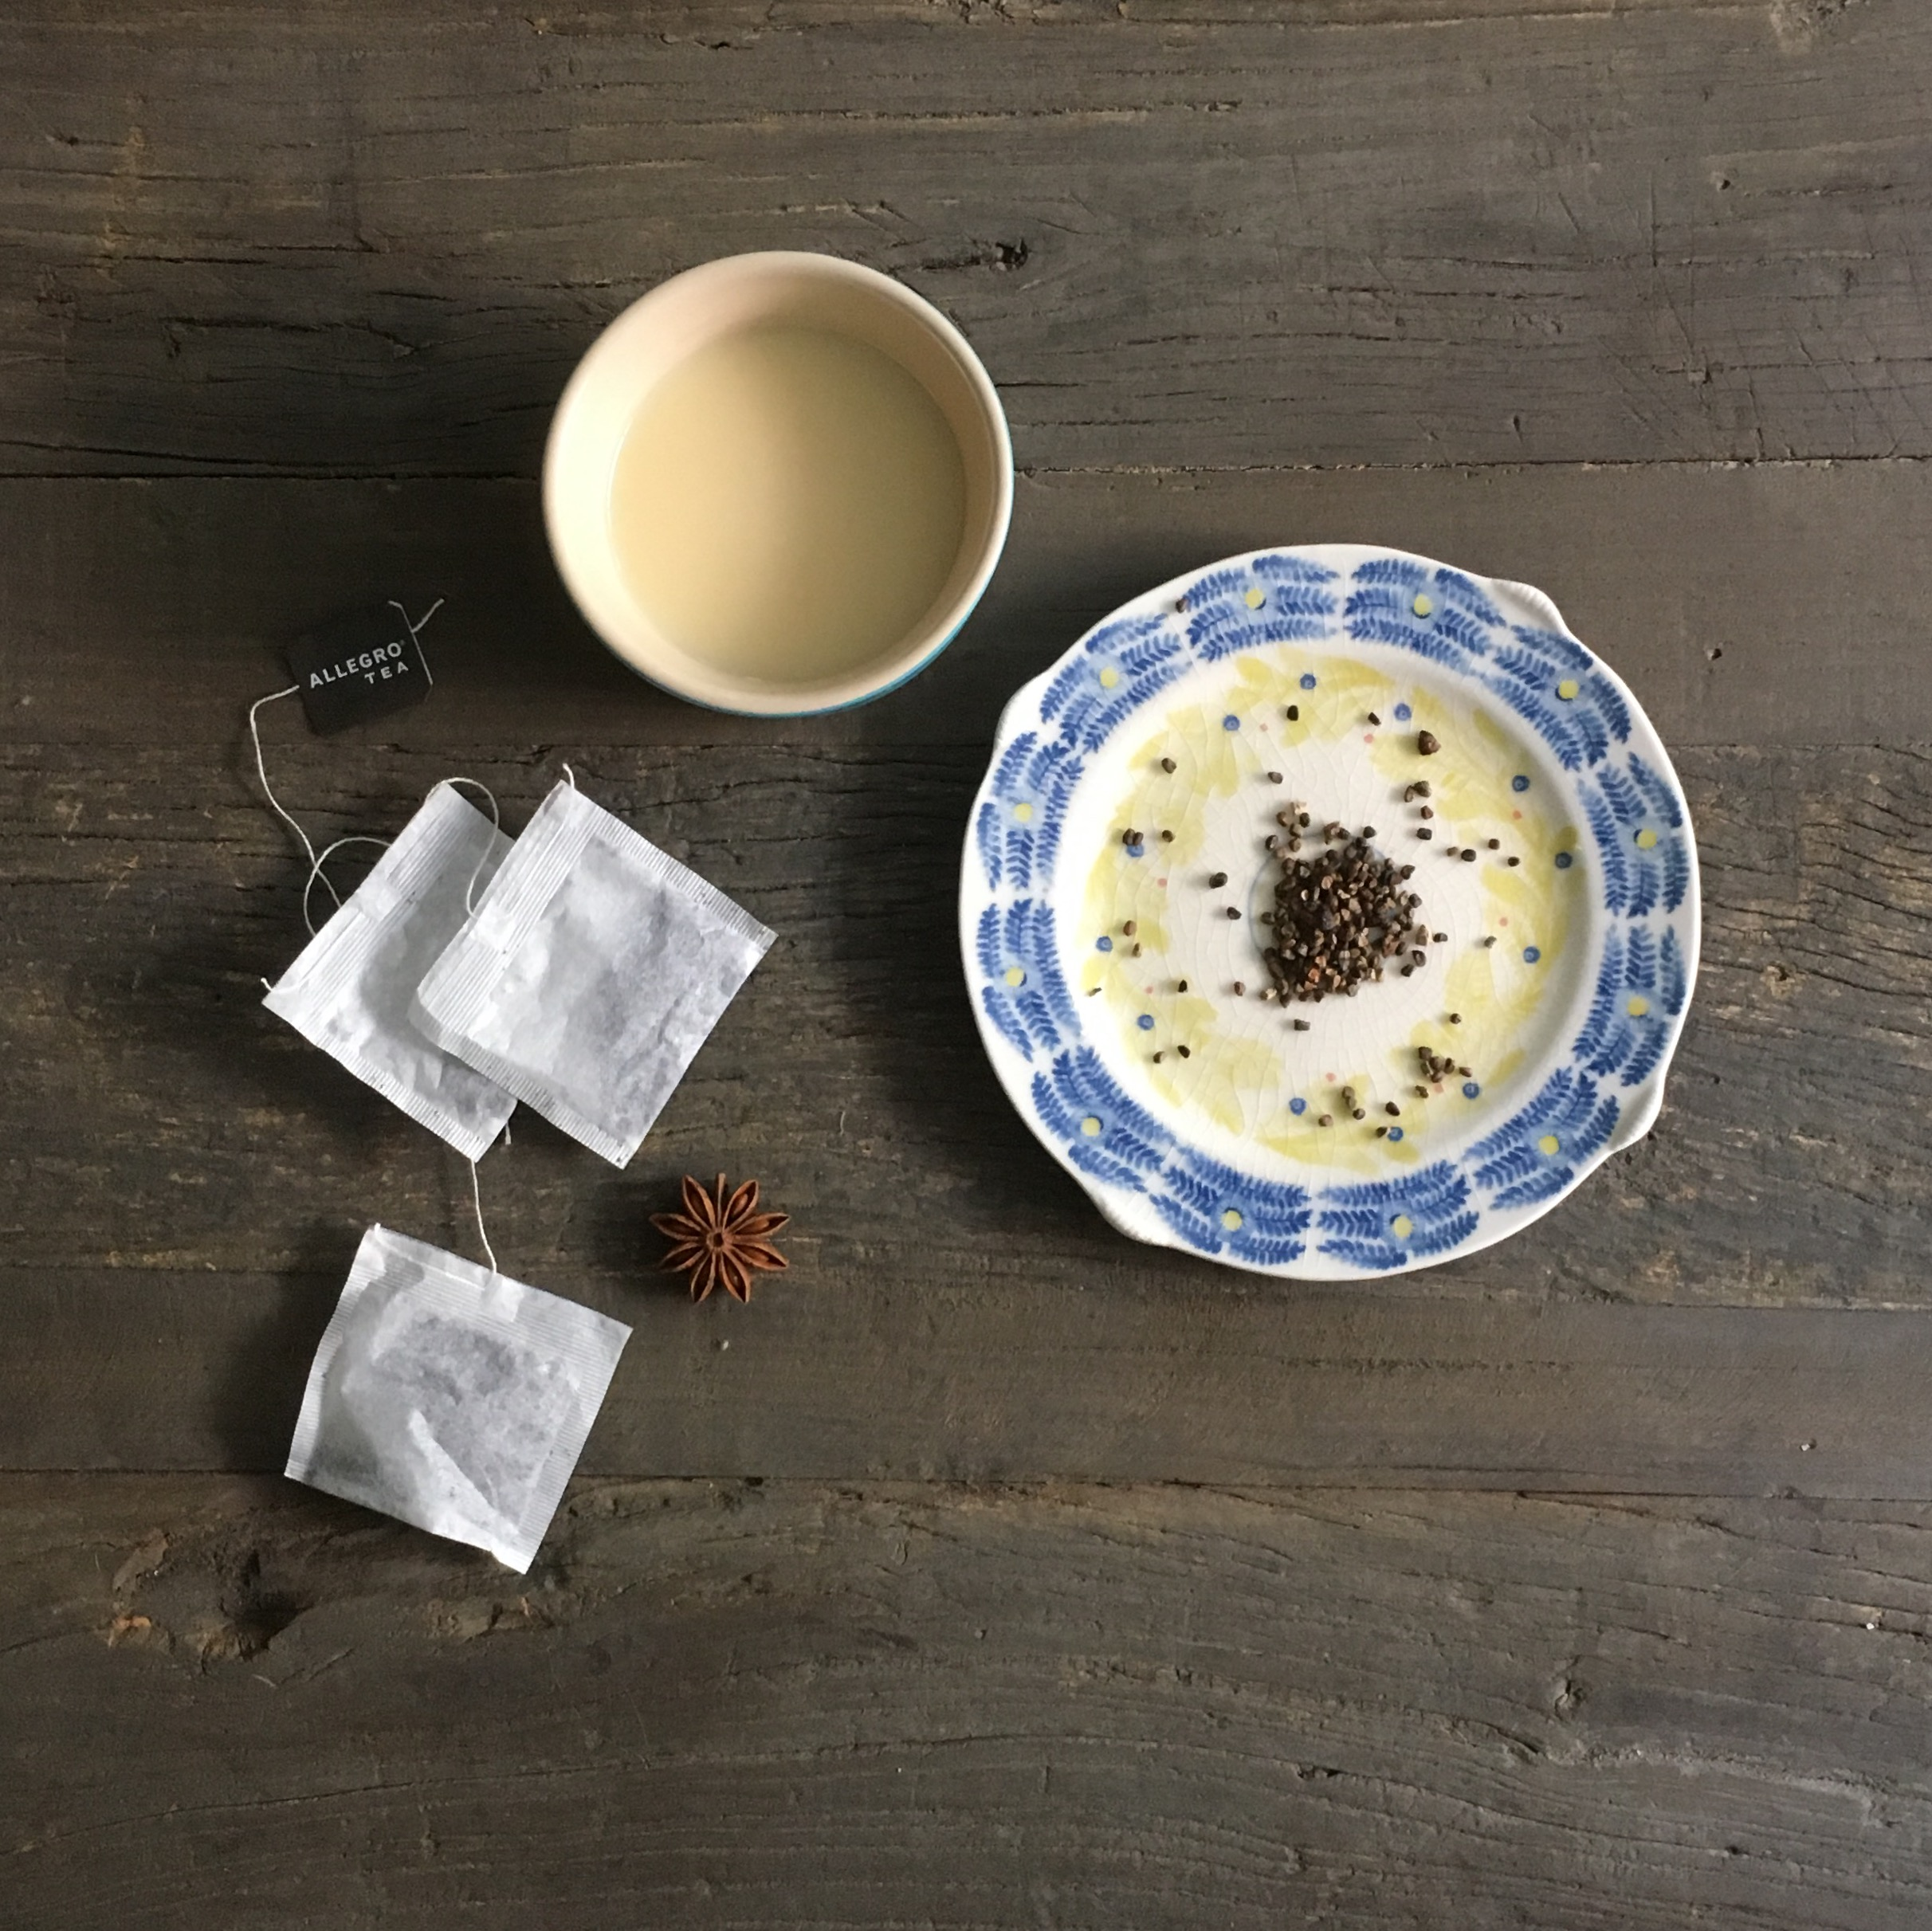 Break out the condensed milk, star anise, cardamom seeds, cloves and ceylon tea for this recipe